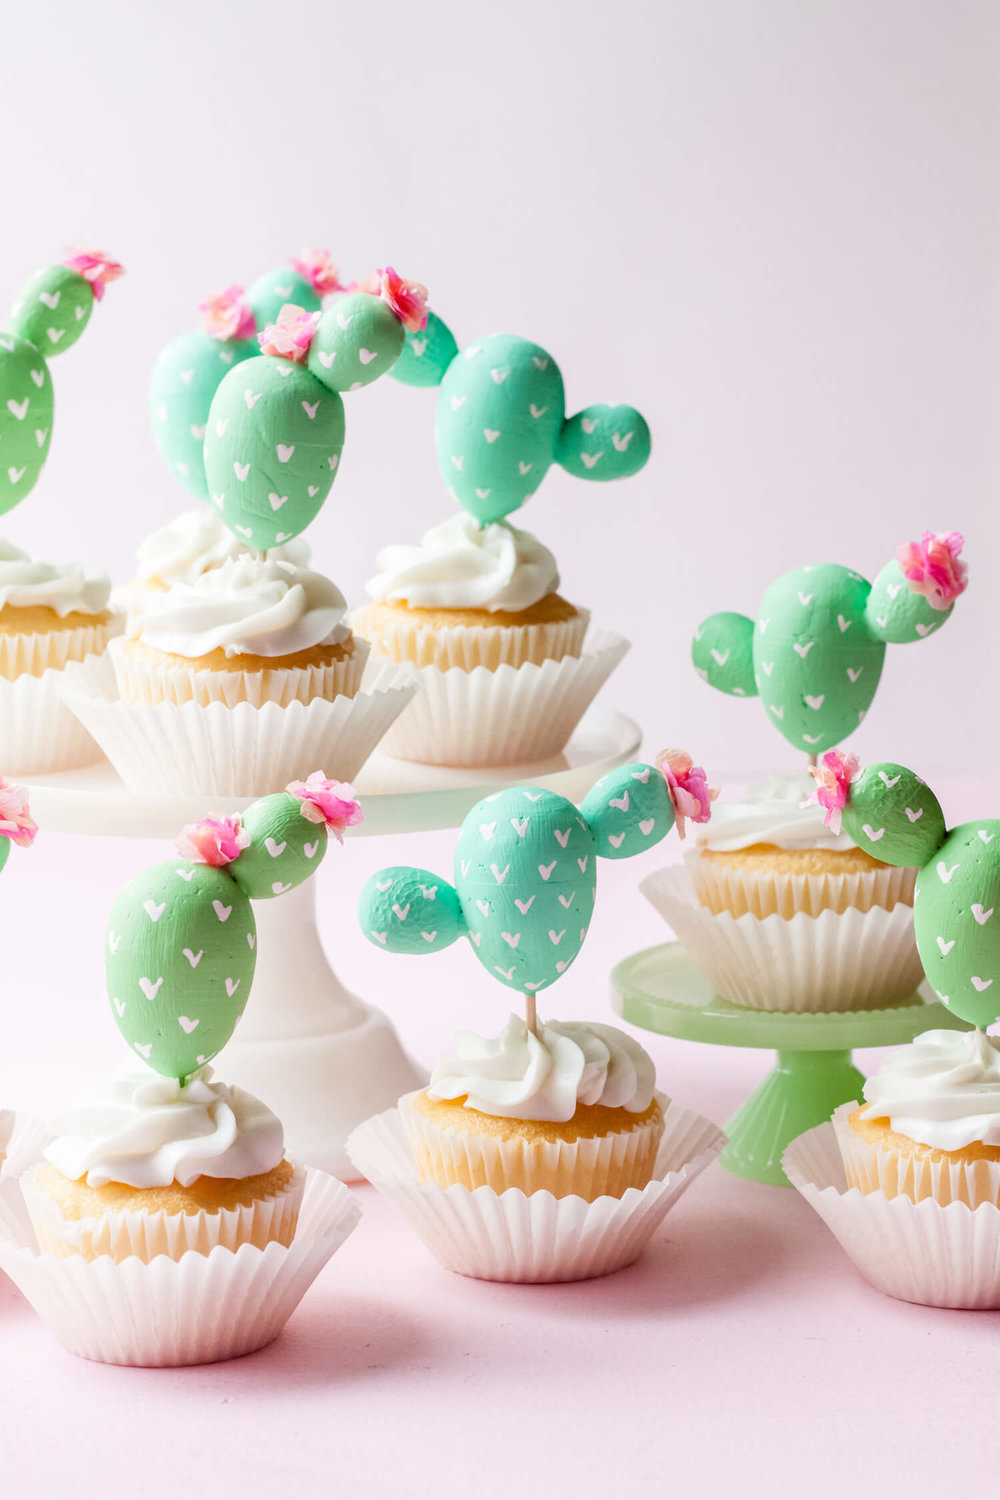 These adorable cactus cupcake toppers are so easy to make and only require a few party supplies. They're great for any Cinco de Mayo party, southwestern wedding or cactus themed party. Be sure to visit Mint Event Design www.minteventdesign.com #cupcaketoppers #cactusparty #cincodemayo #cactus #cactusdecor #partyideas #diypartydecor #partycrafts